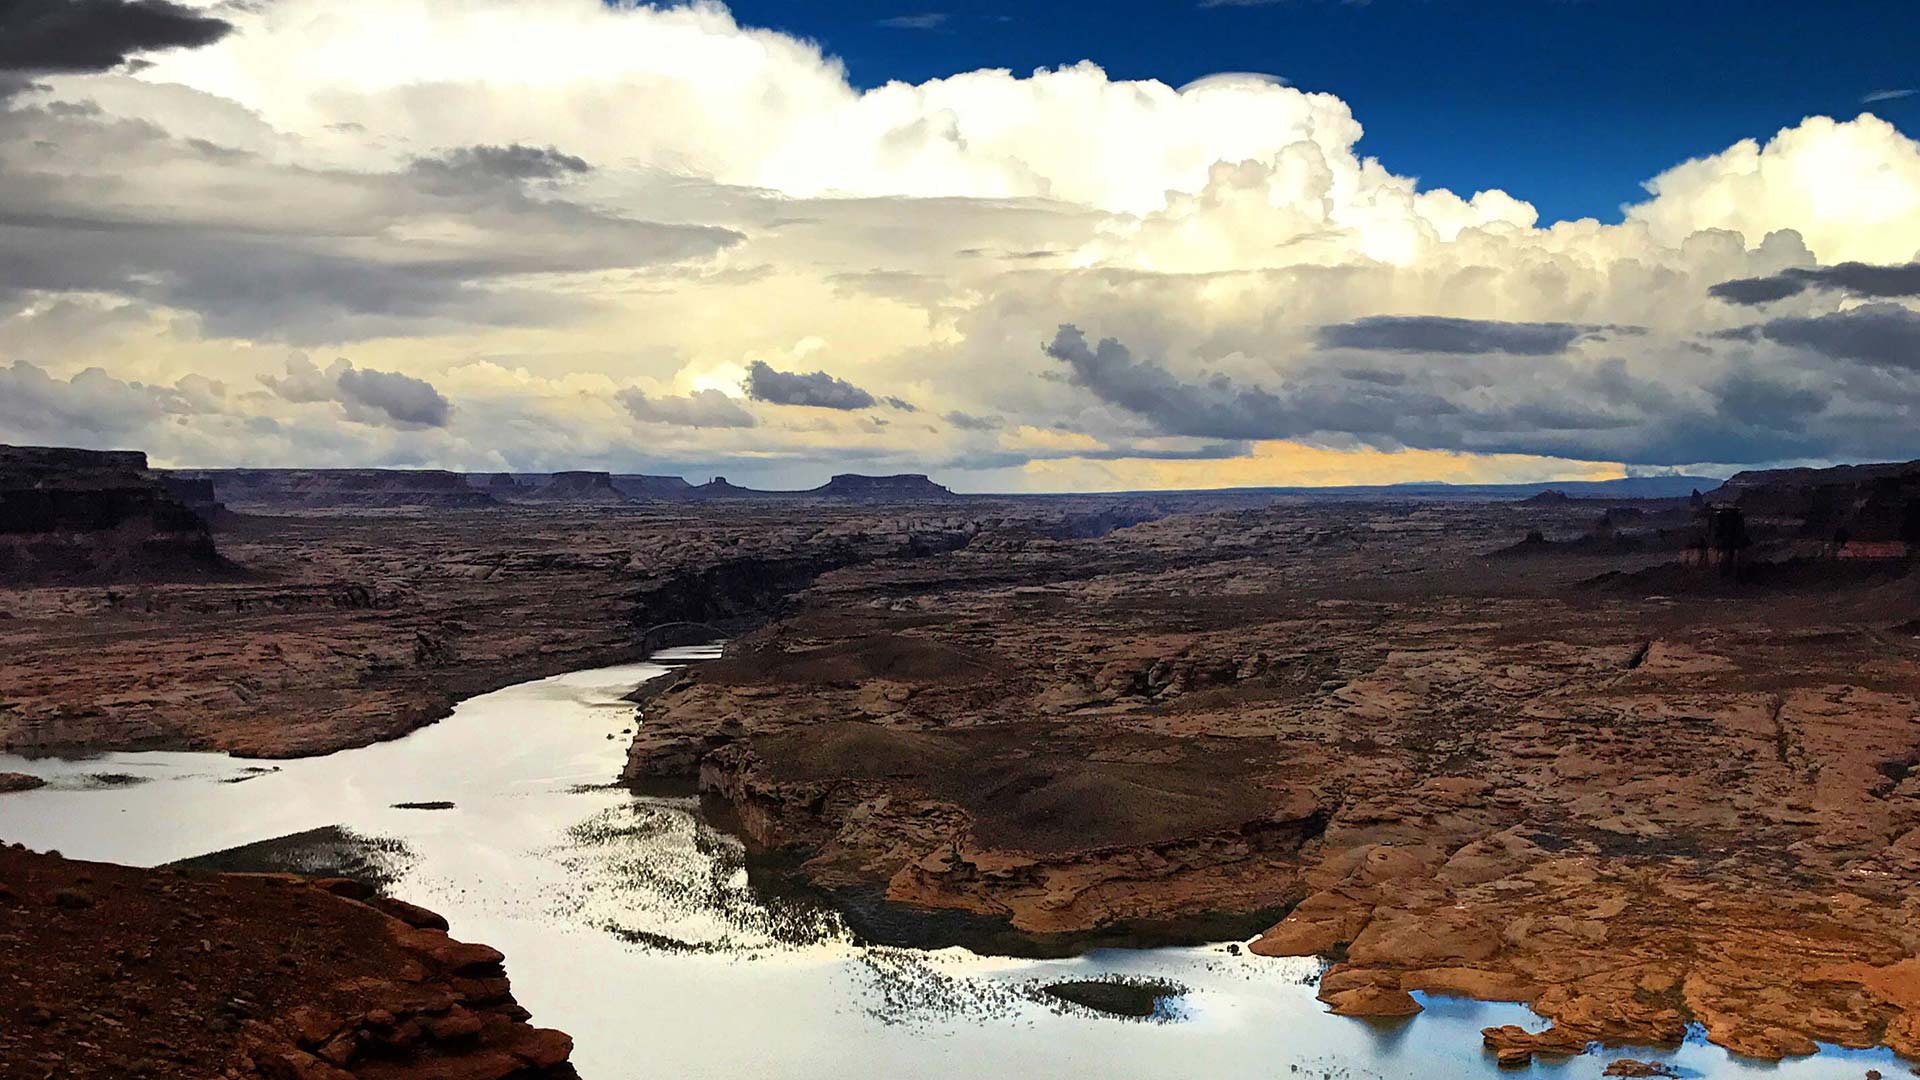 A view of the northern end of Lake Powell, near Hite, Utah.